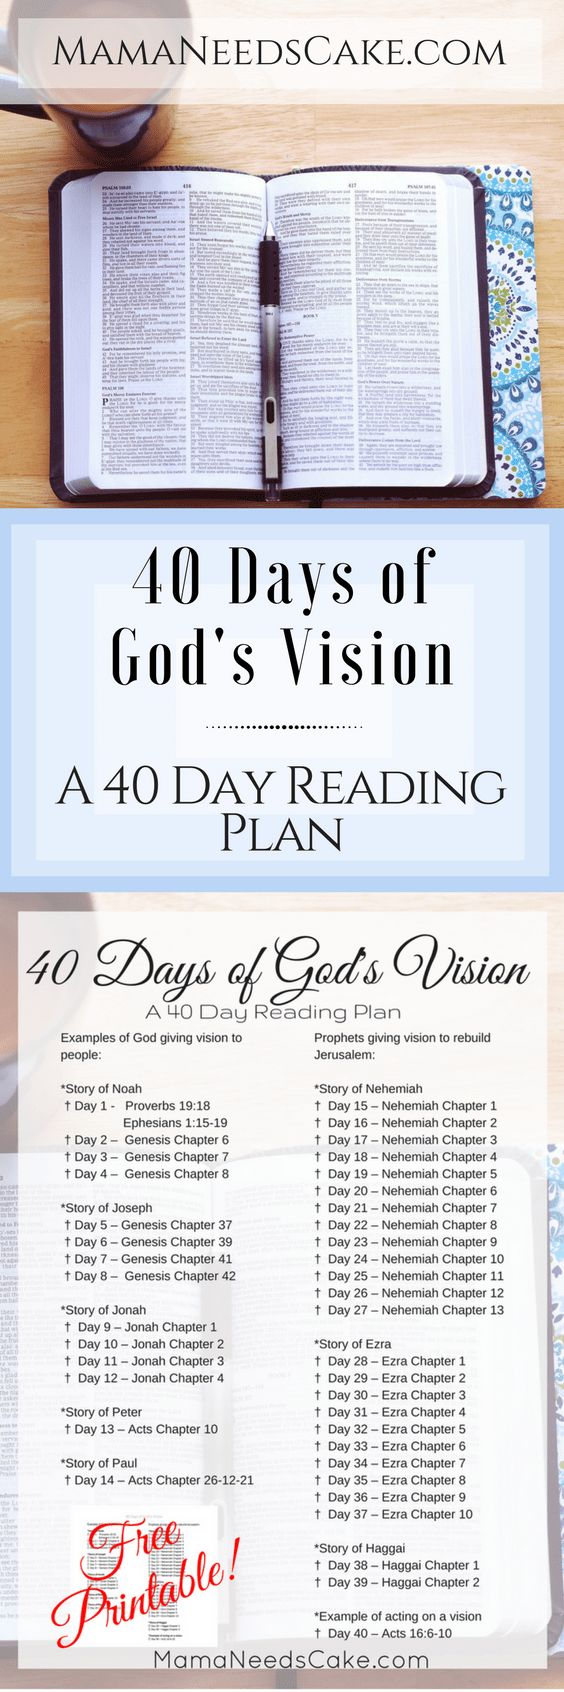 40 Days of God's Vision - Reading Plan & Free Printable! - One of the hardest thing about reading the Bible is opening it. The Bible can be very